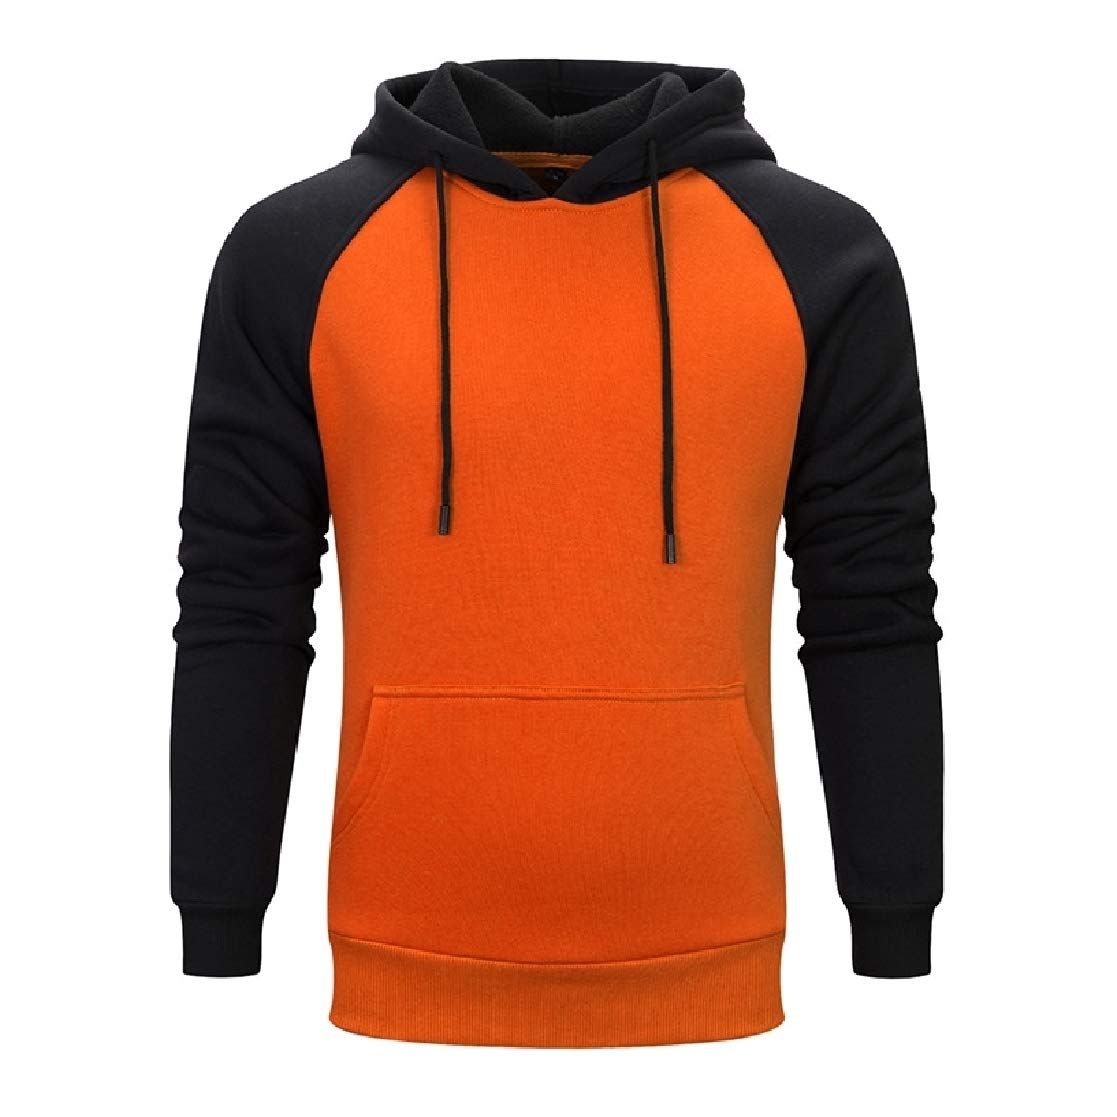 YUNY Mens Solid Winter Hood Couples Pullover Sweatshirt Top Orange S